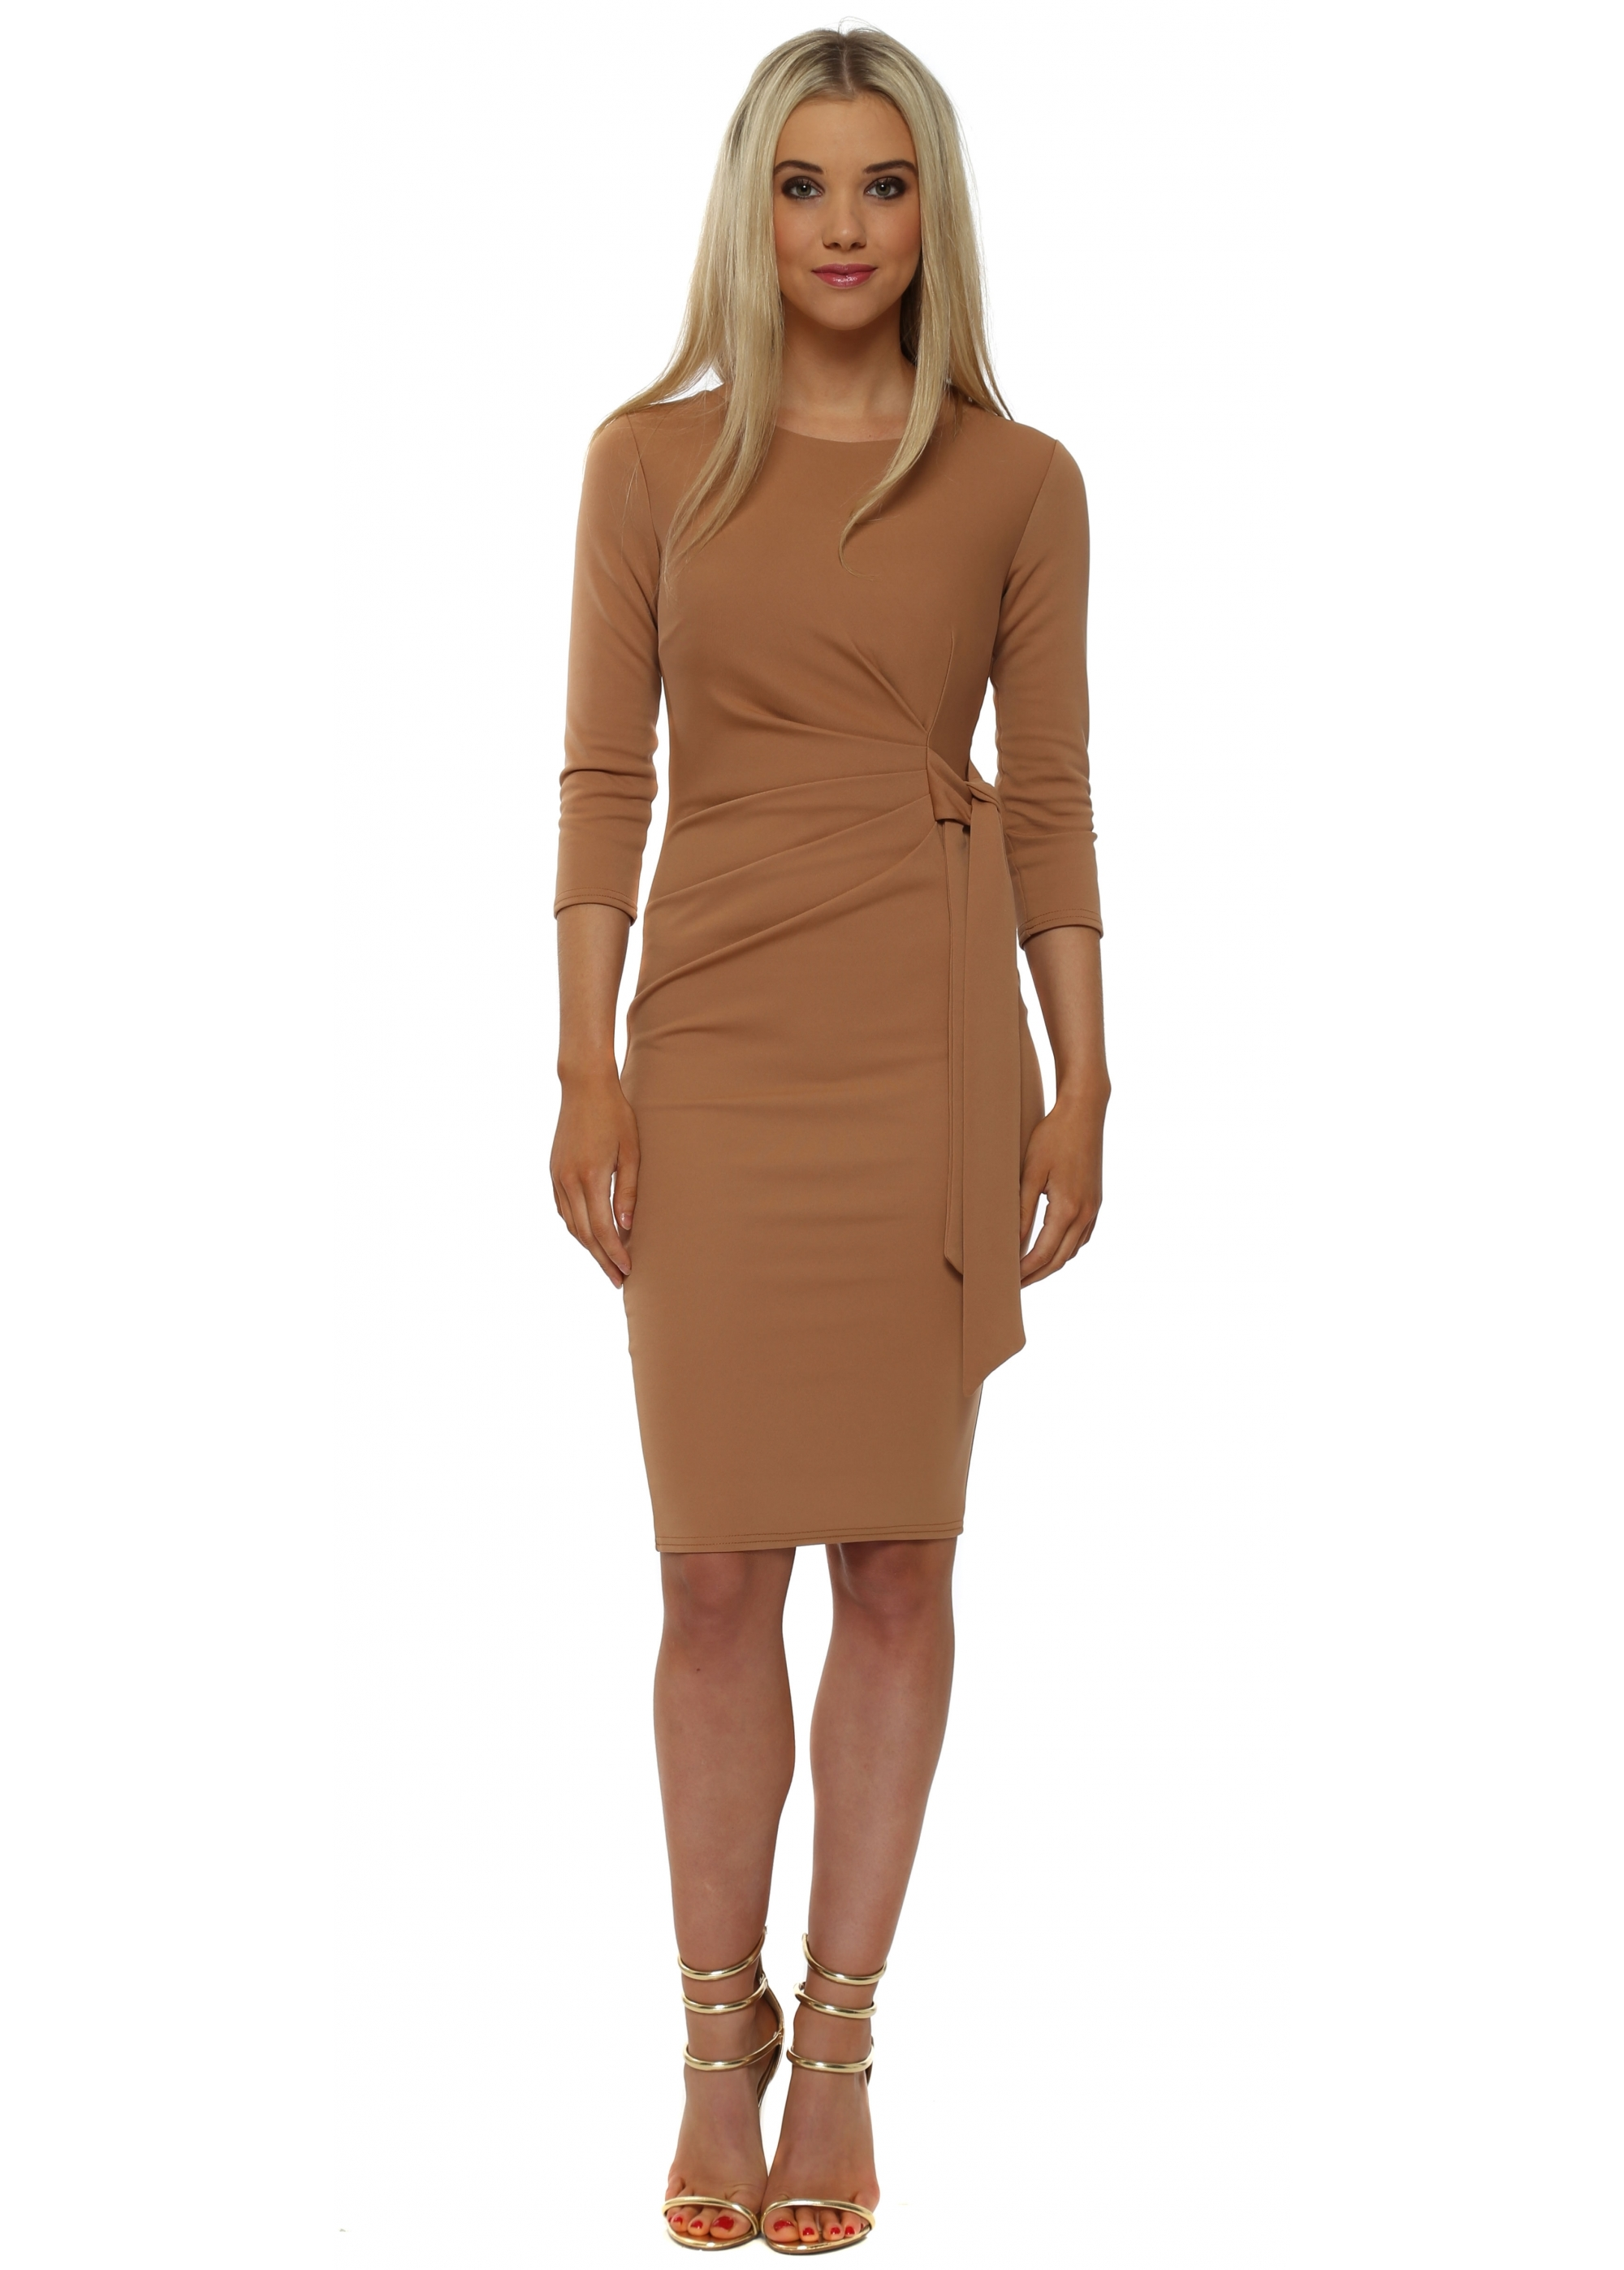 Goddess London Tan Pleated Tie Pencil Dress